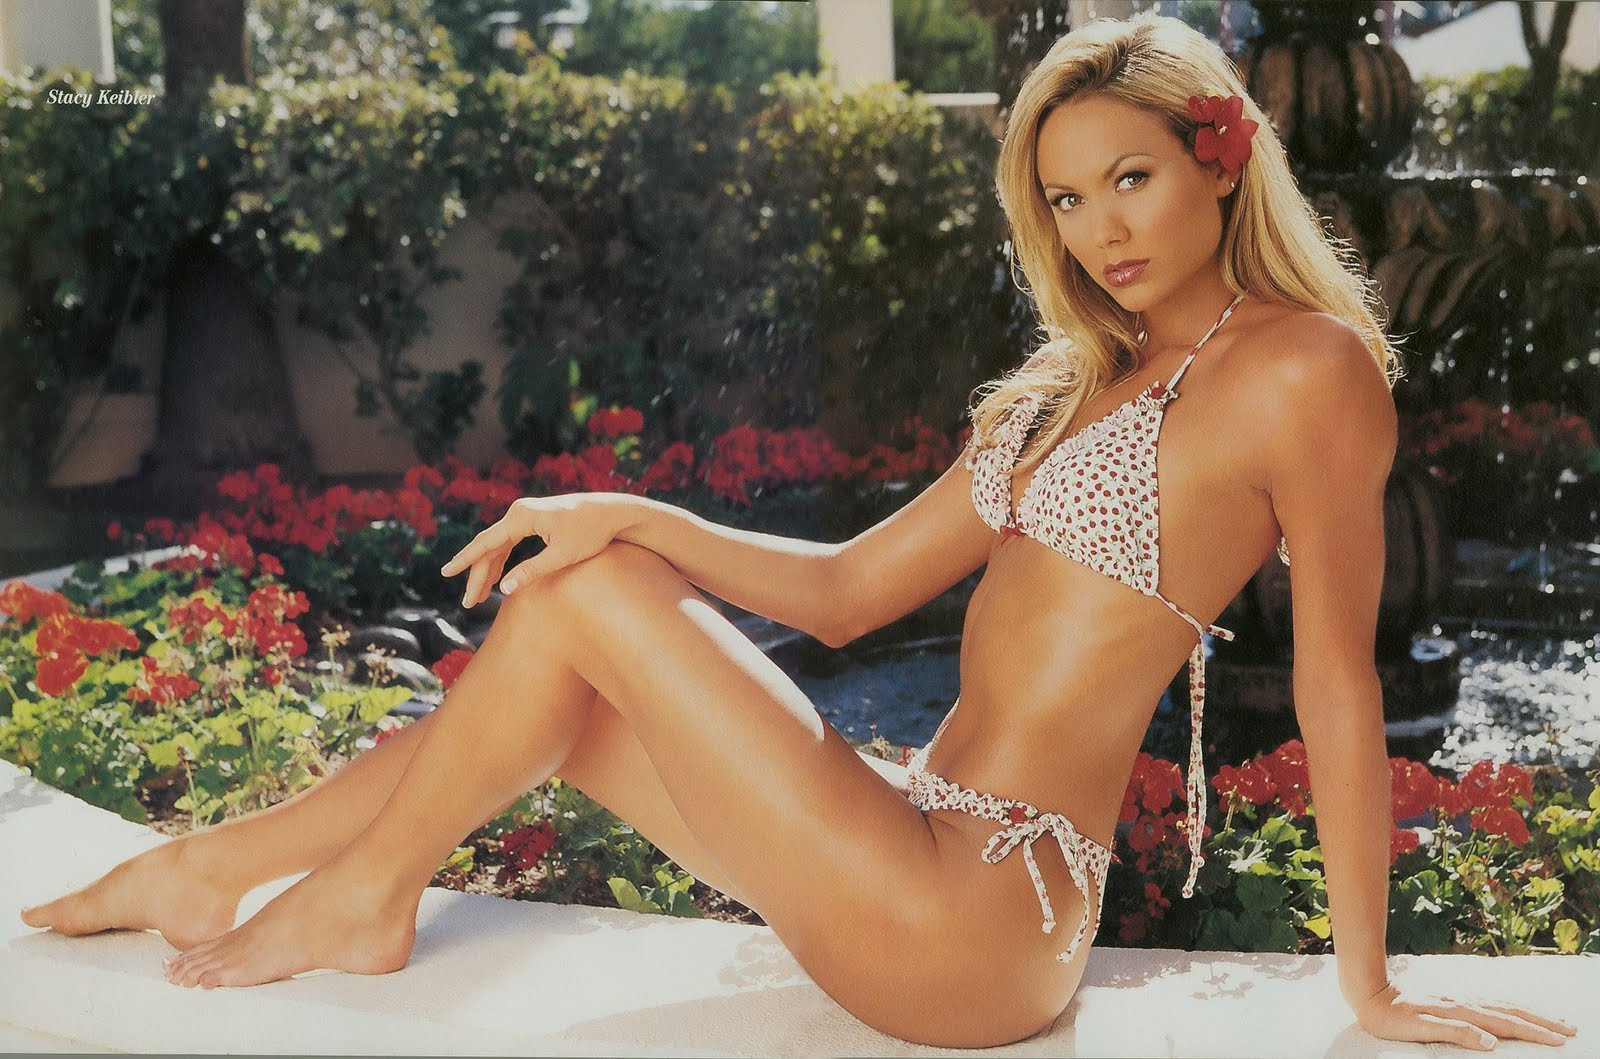 Stacy keibler mens fitness photoshoot june 2012